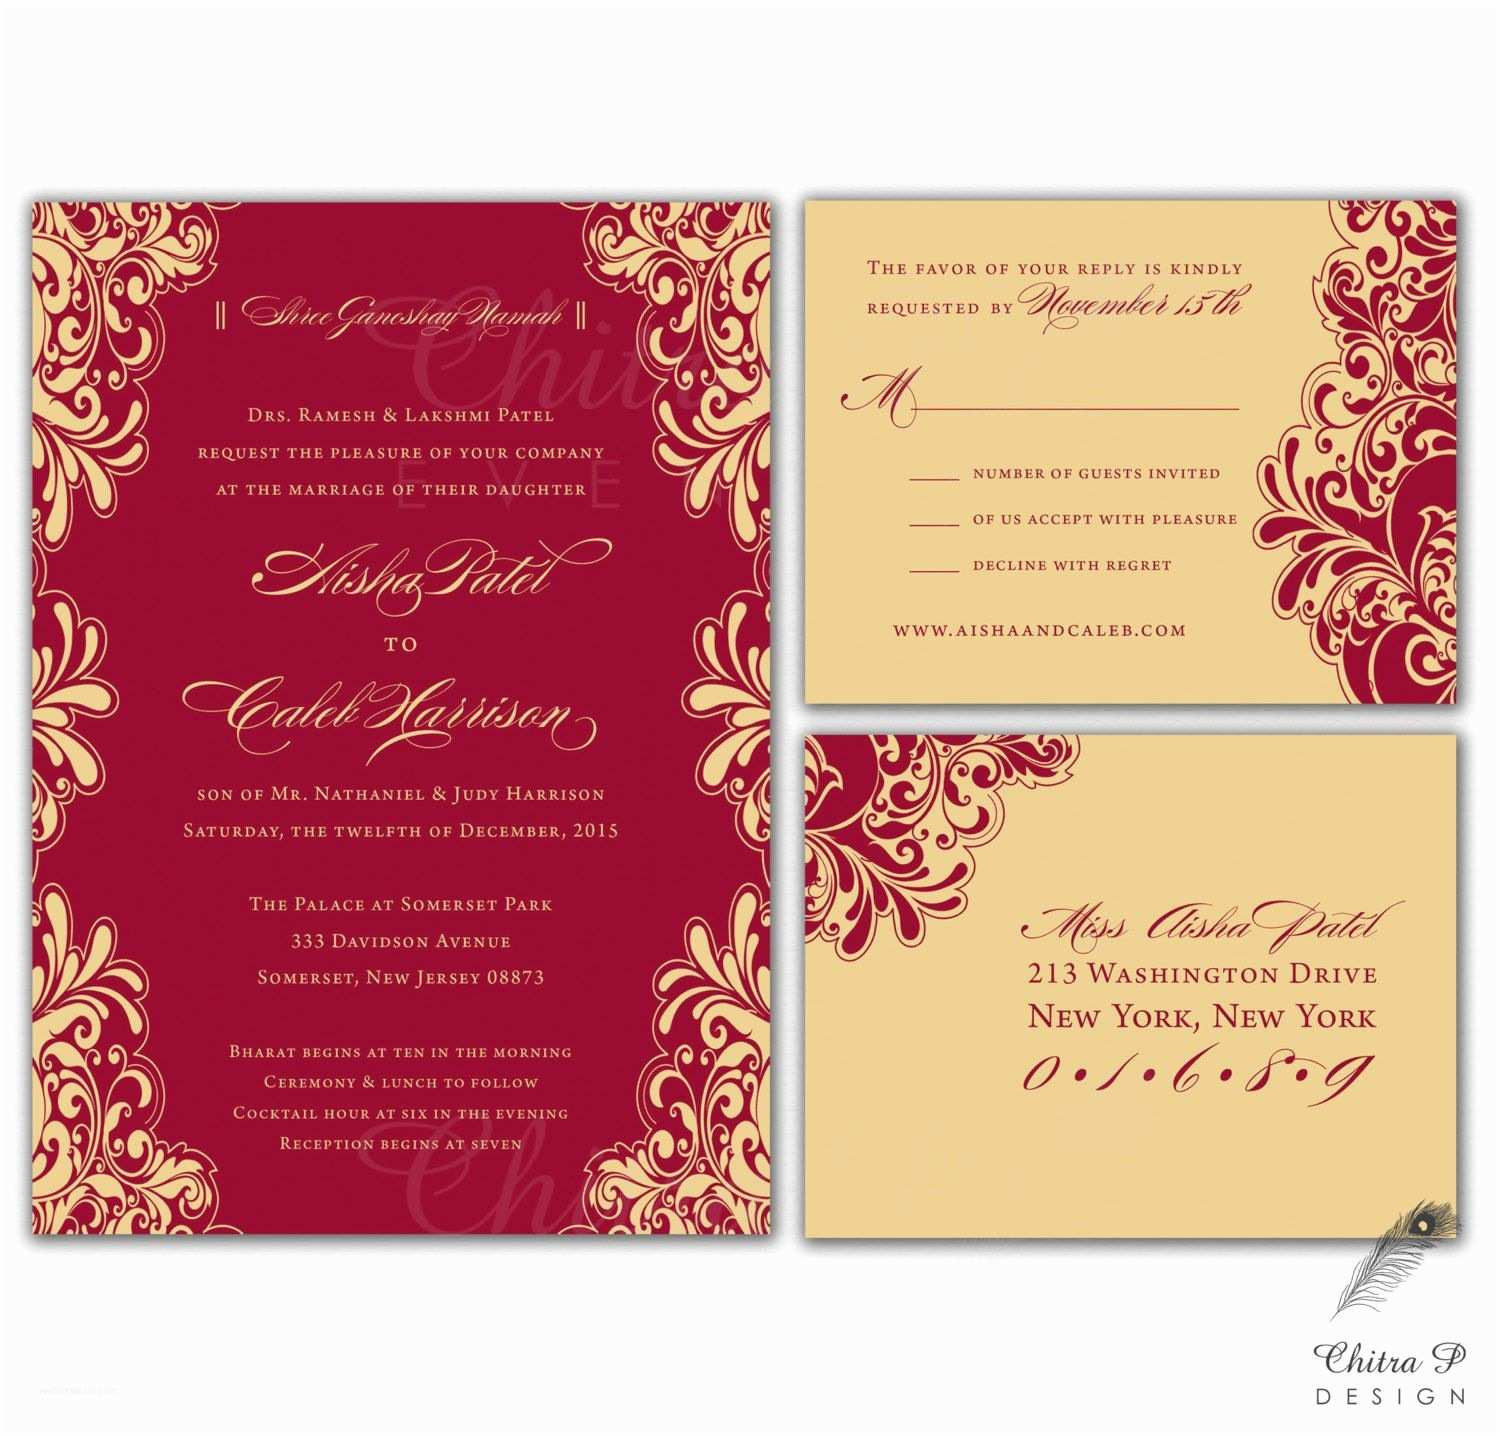 Indian Wedding Invitations Red & Gold Wedding Invitations Rsvp Printed Indian от